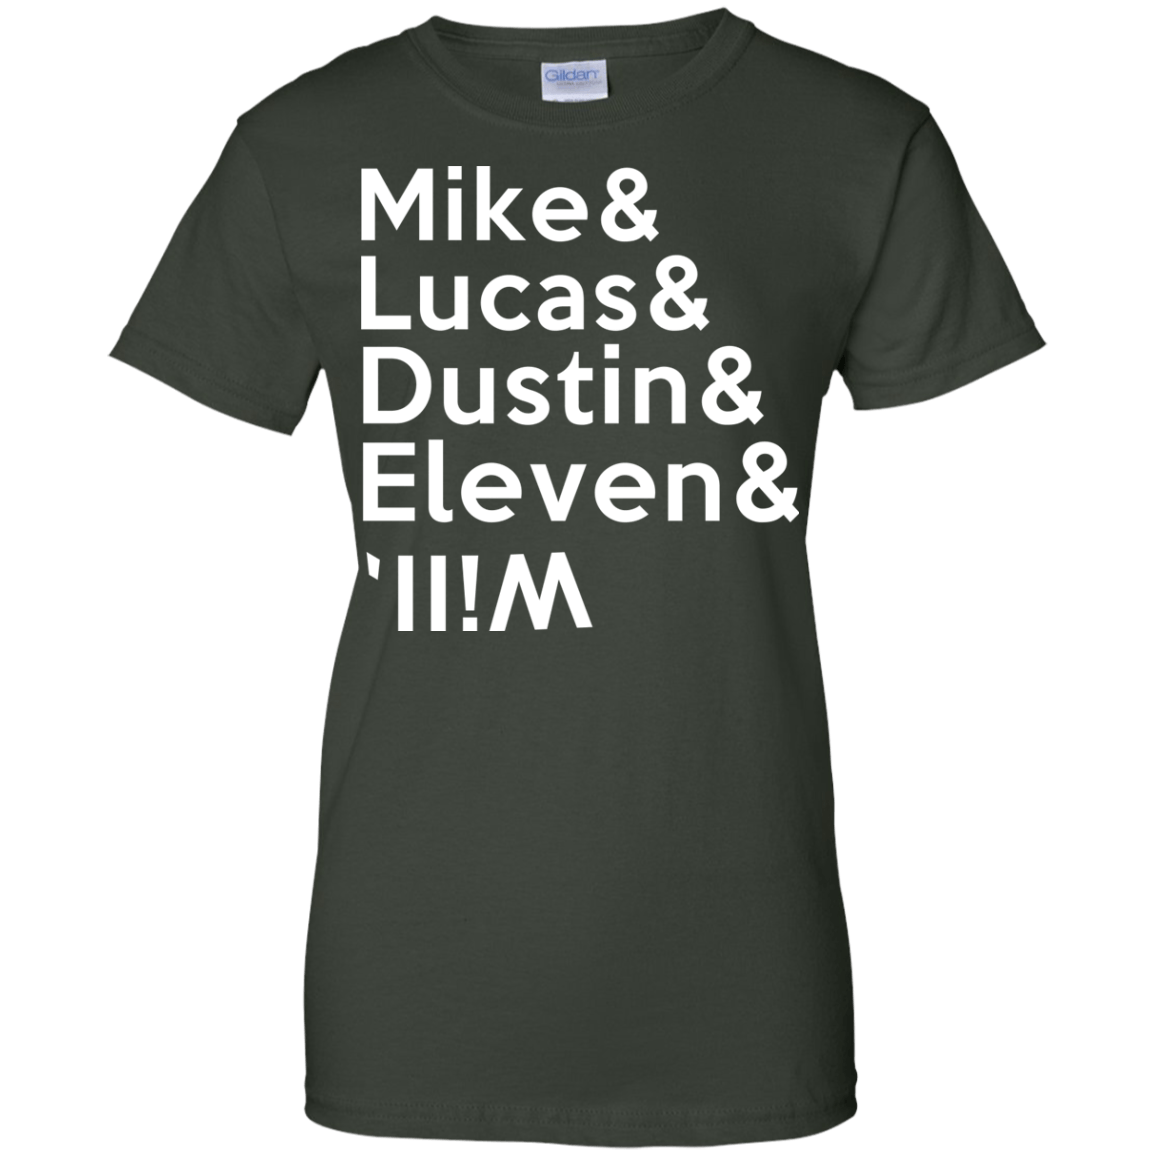 Stranger a Things t shirt Mike & Lucas & Dustin